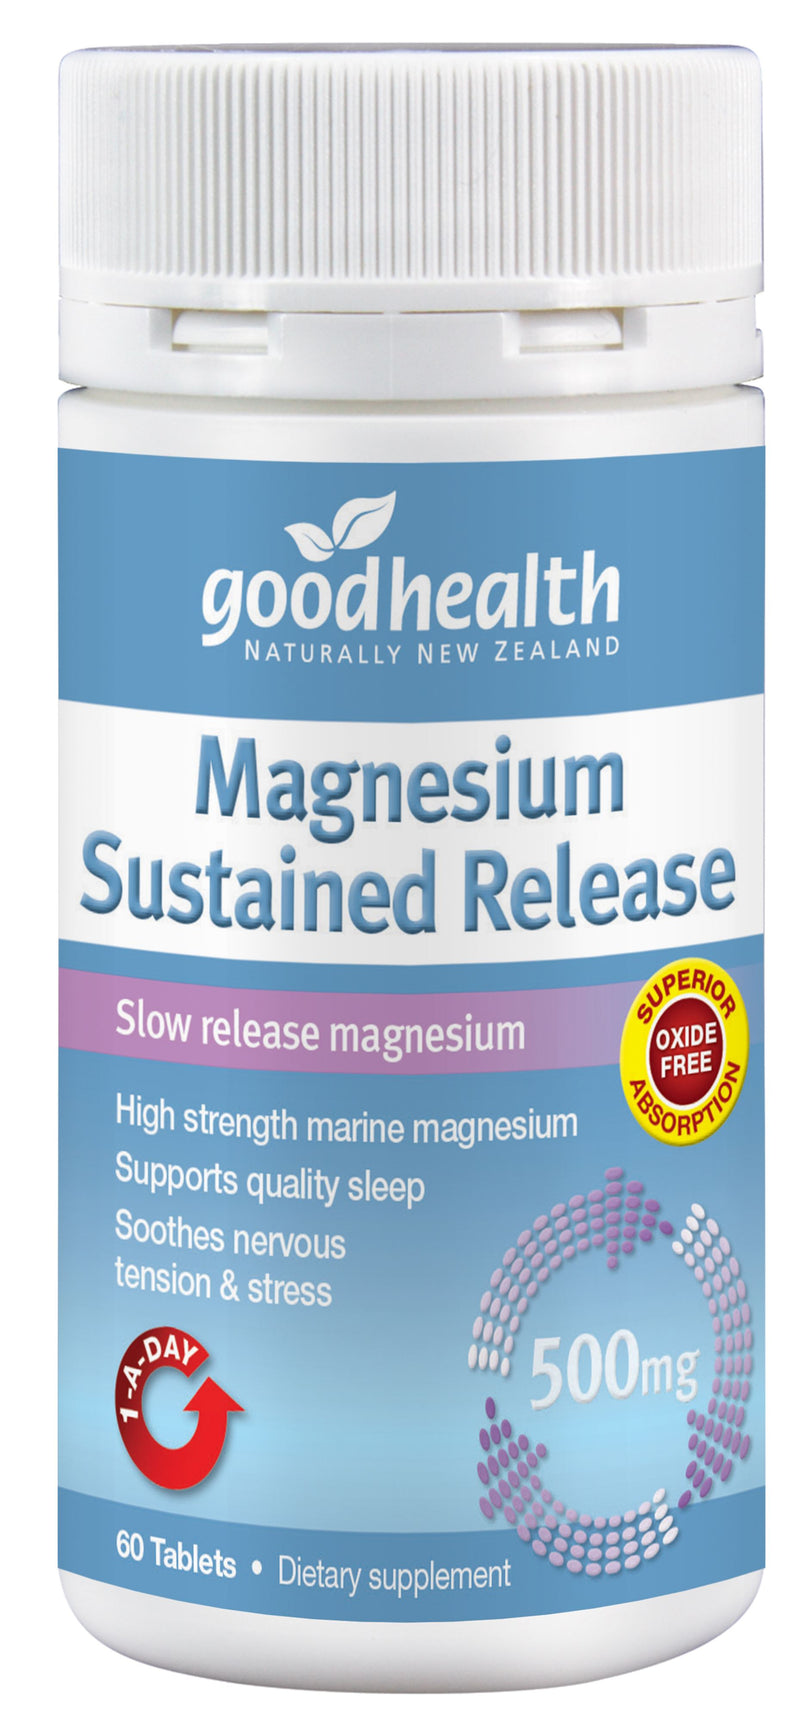 Magnesium Sustained Release - 60 Tablets